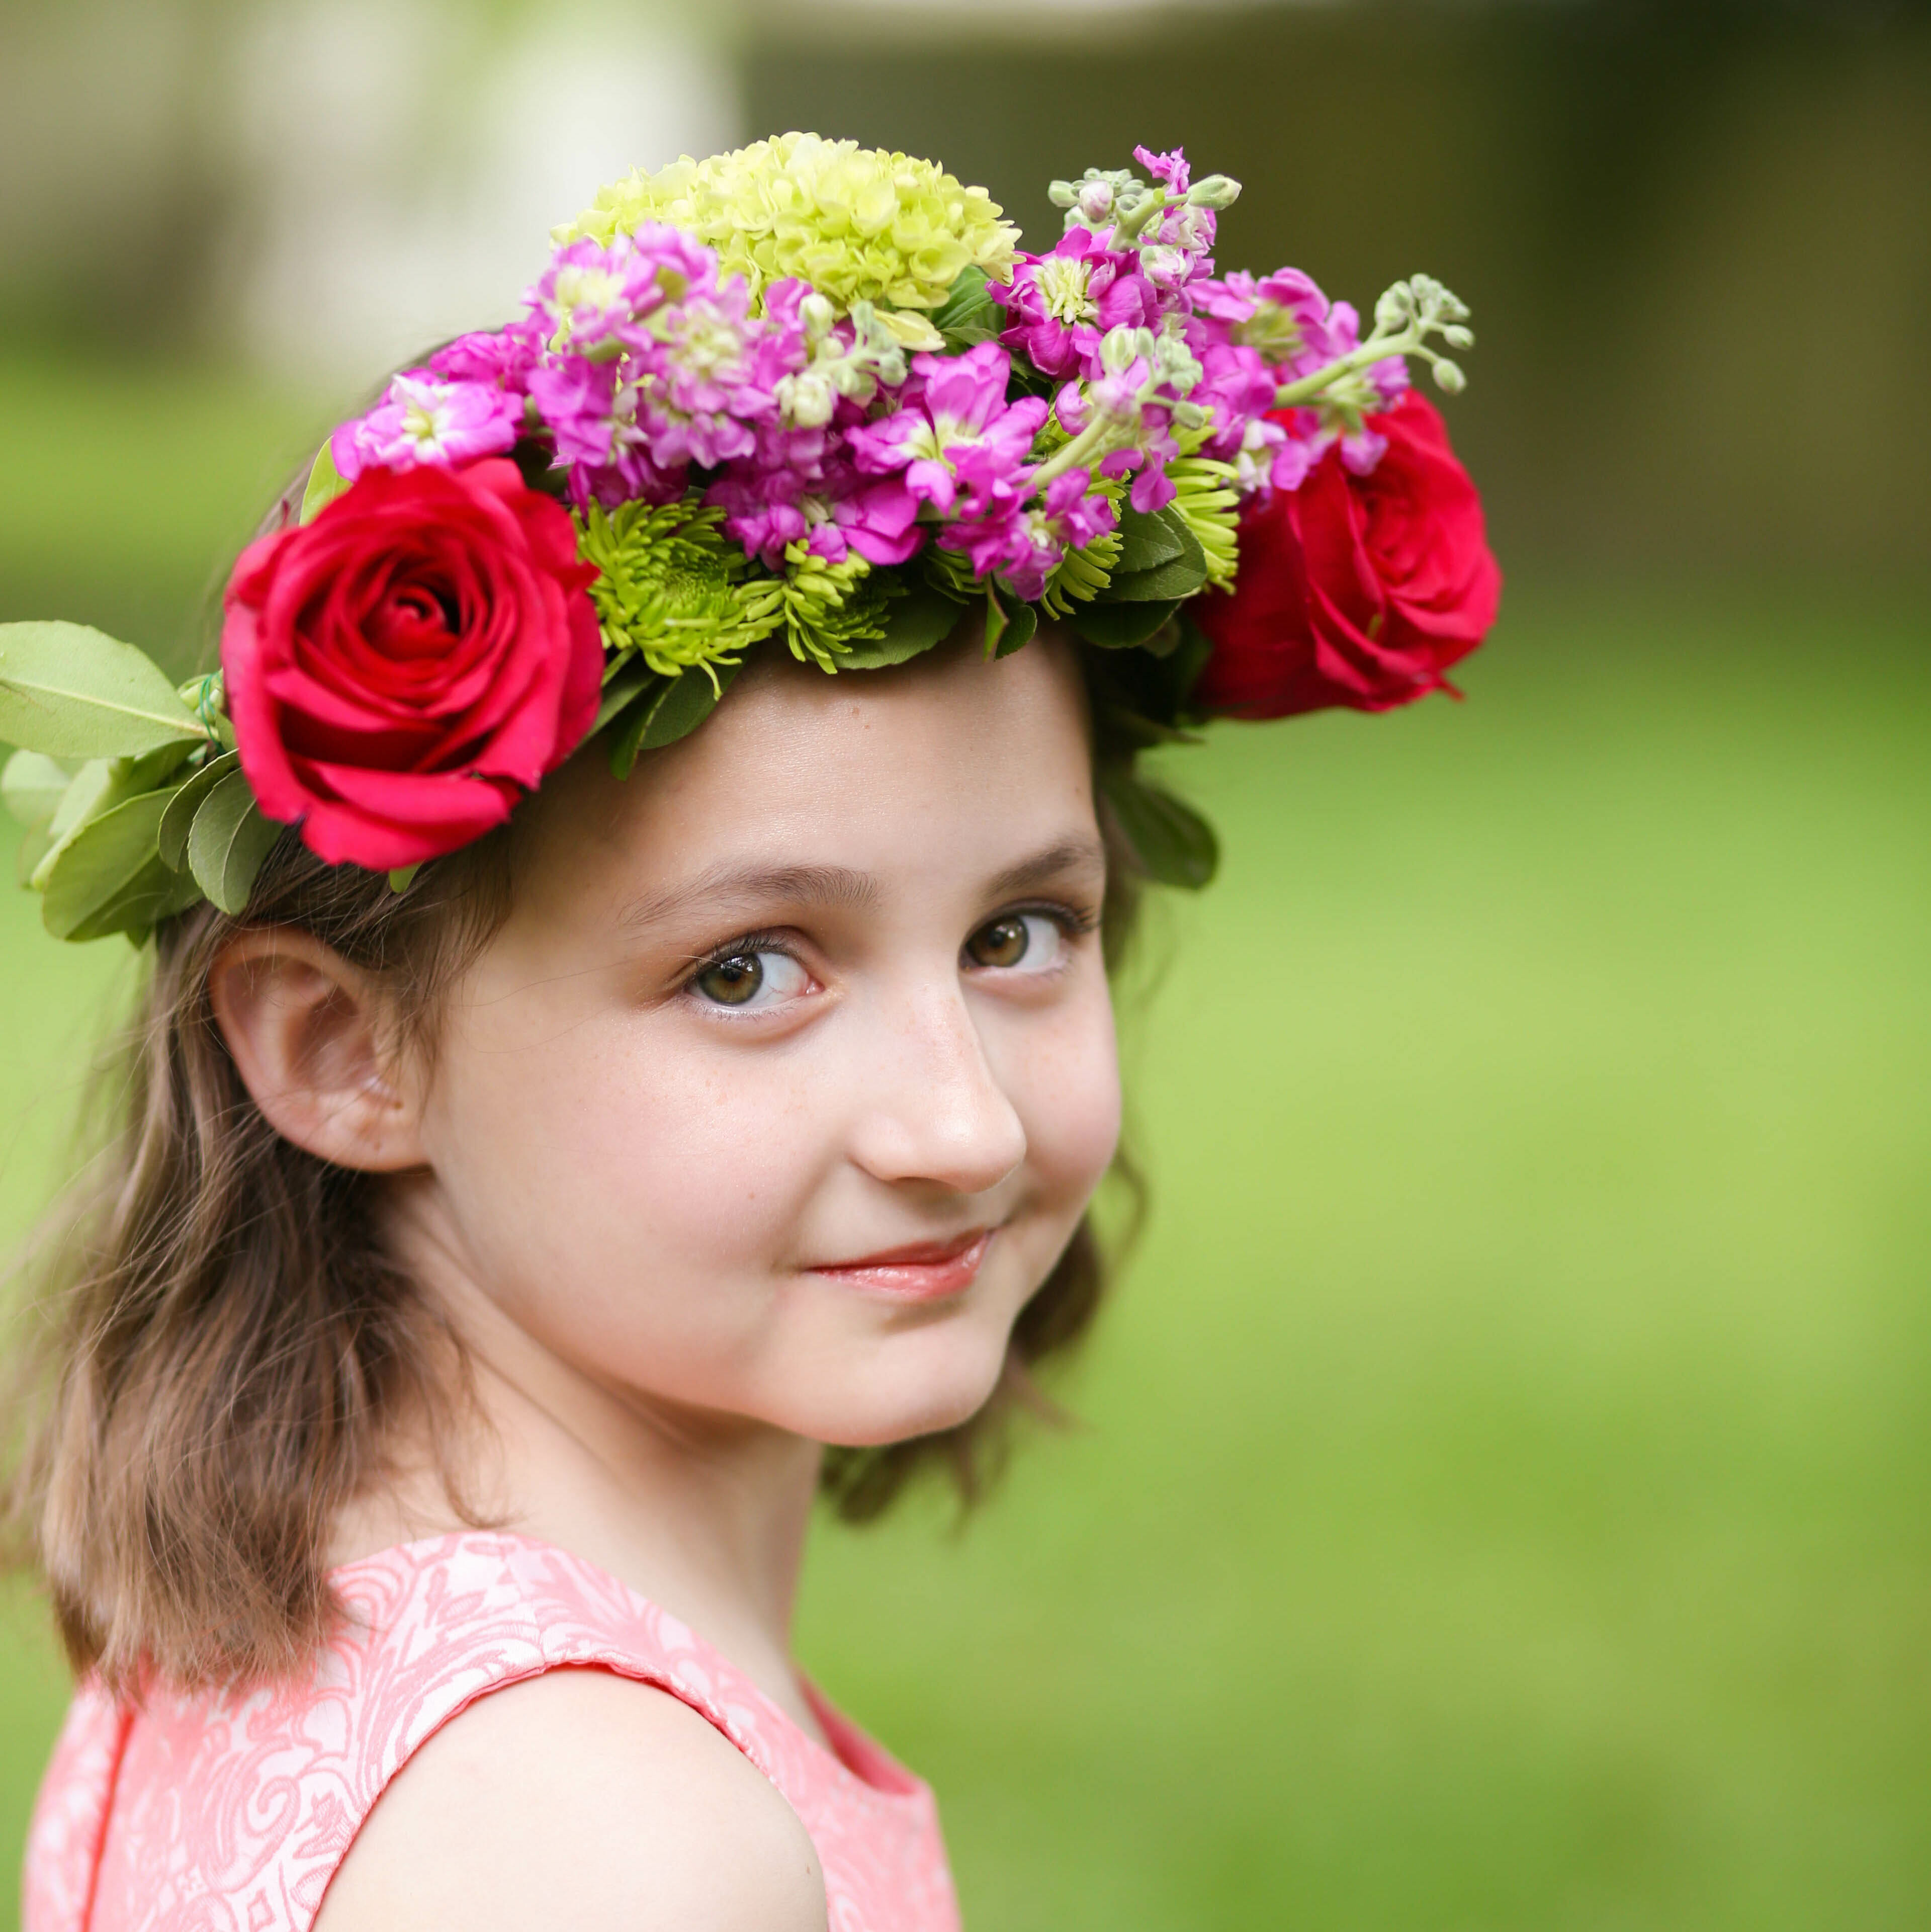 How to Make A Flower Crown Our Best Bites